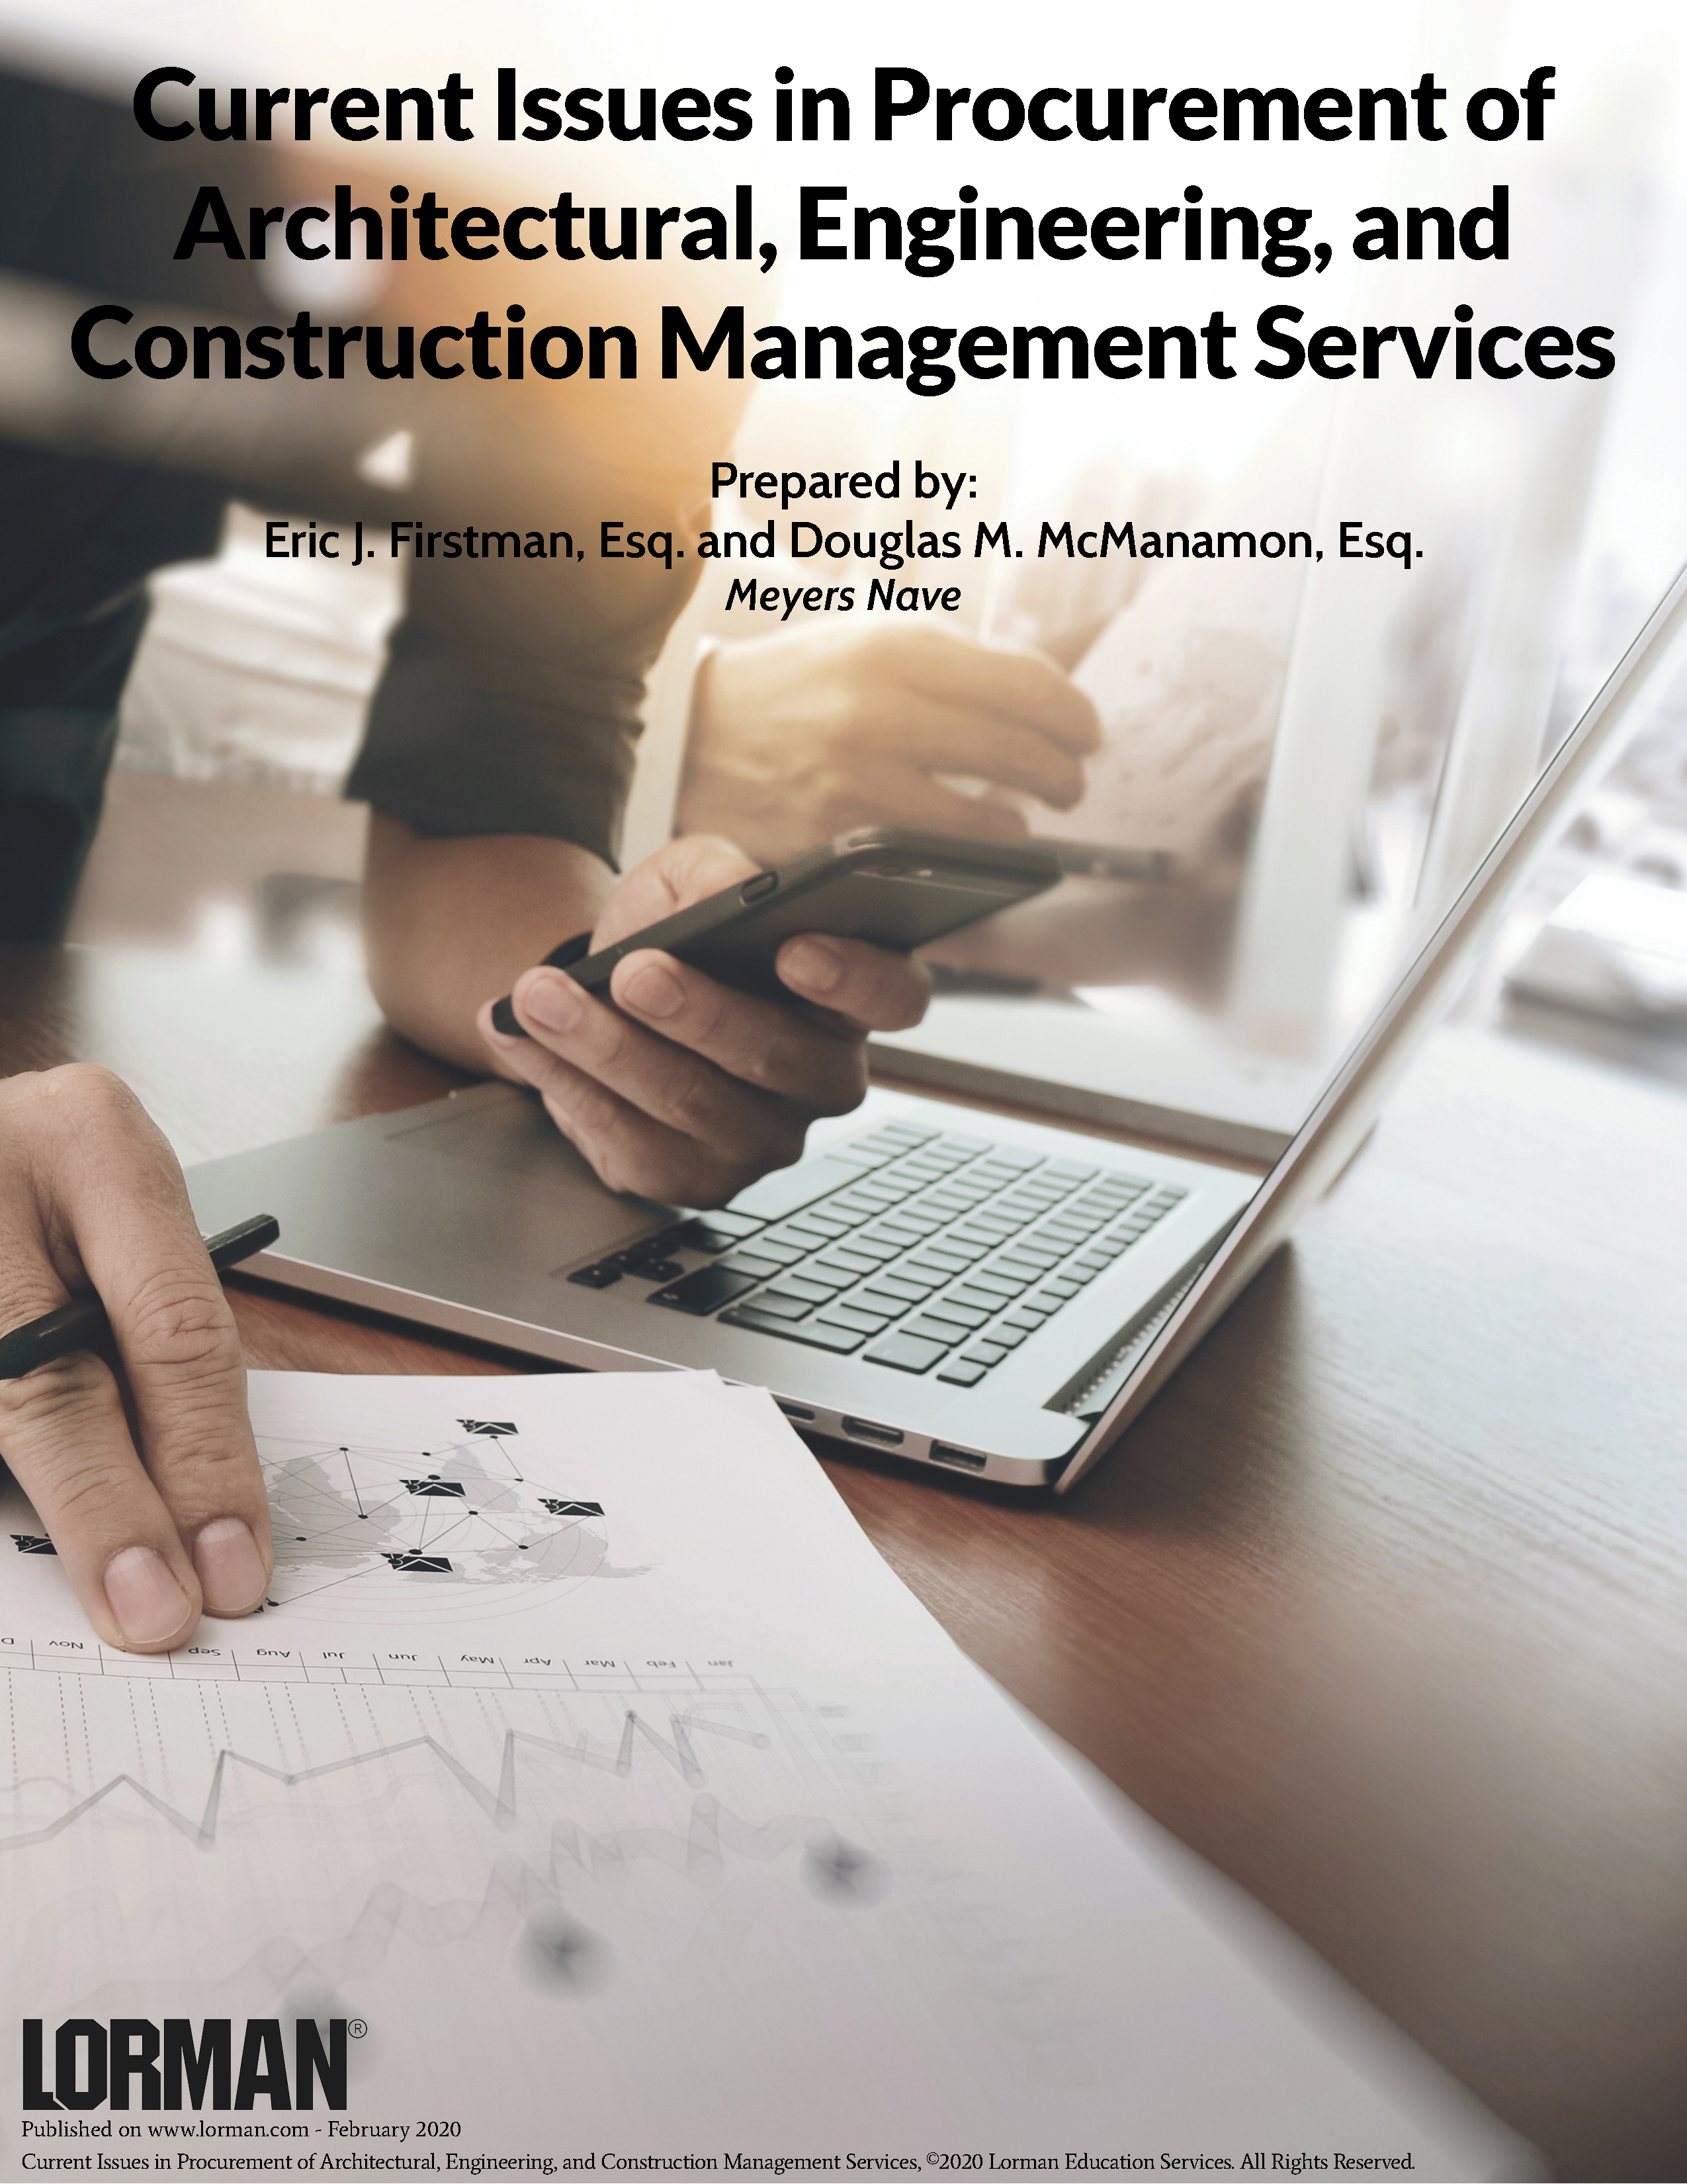 Current Issues in Procurement of Architectural, Engineering, and Construction Management Services